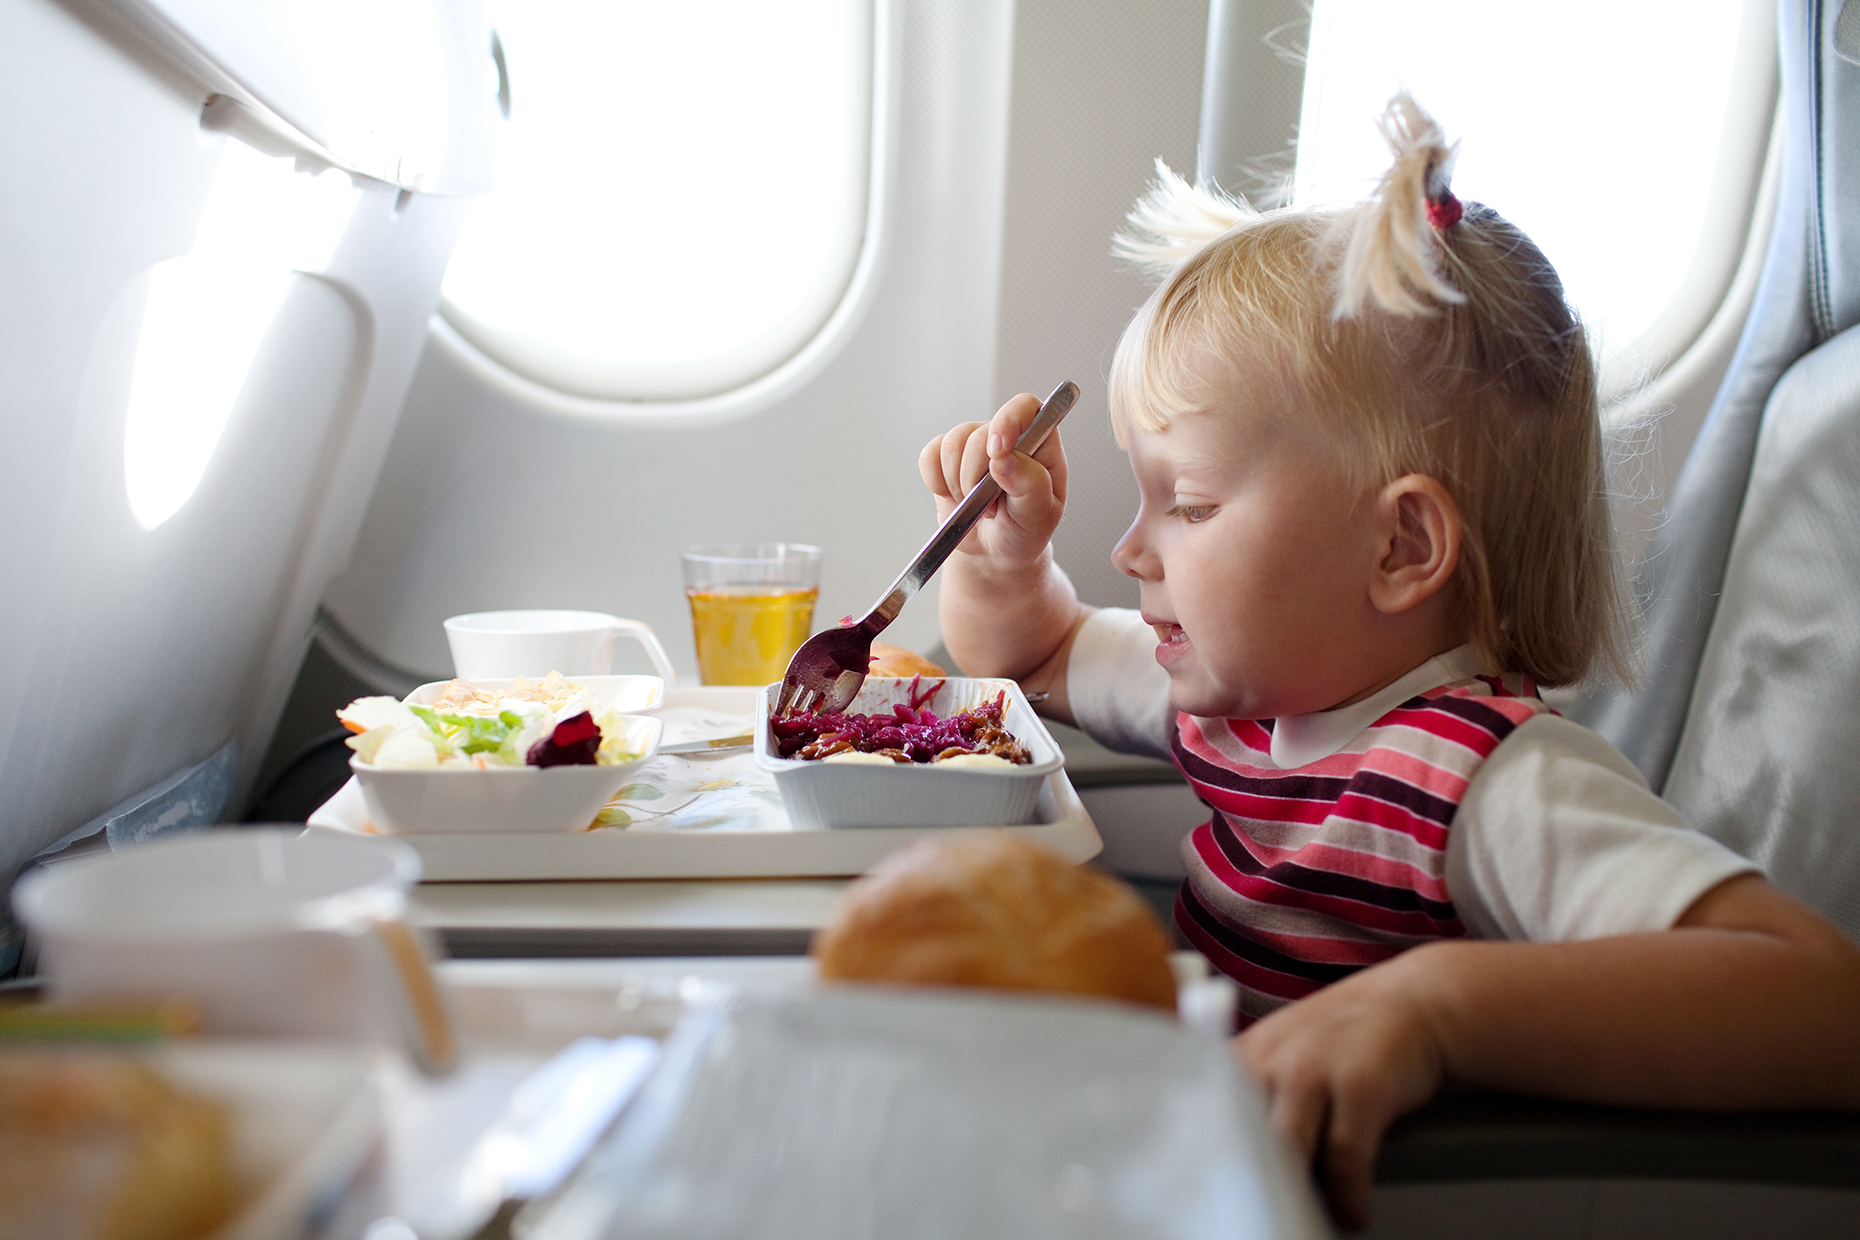 Baby eating plane food